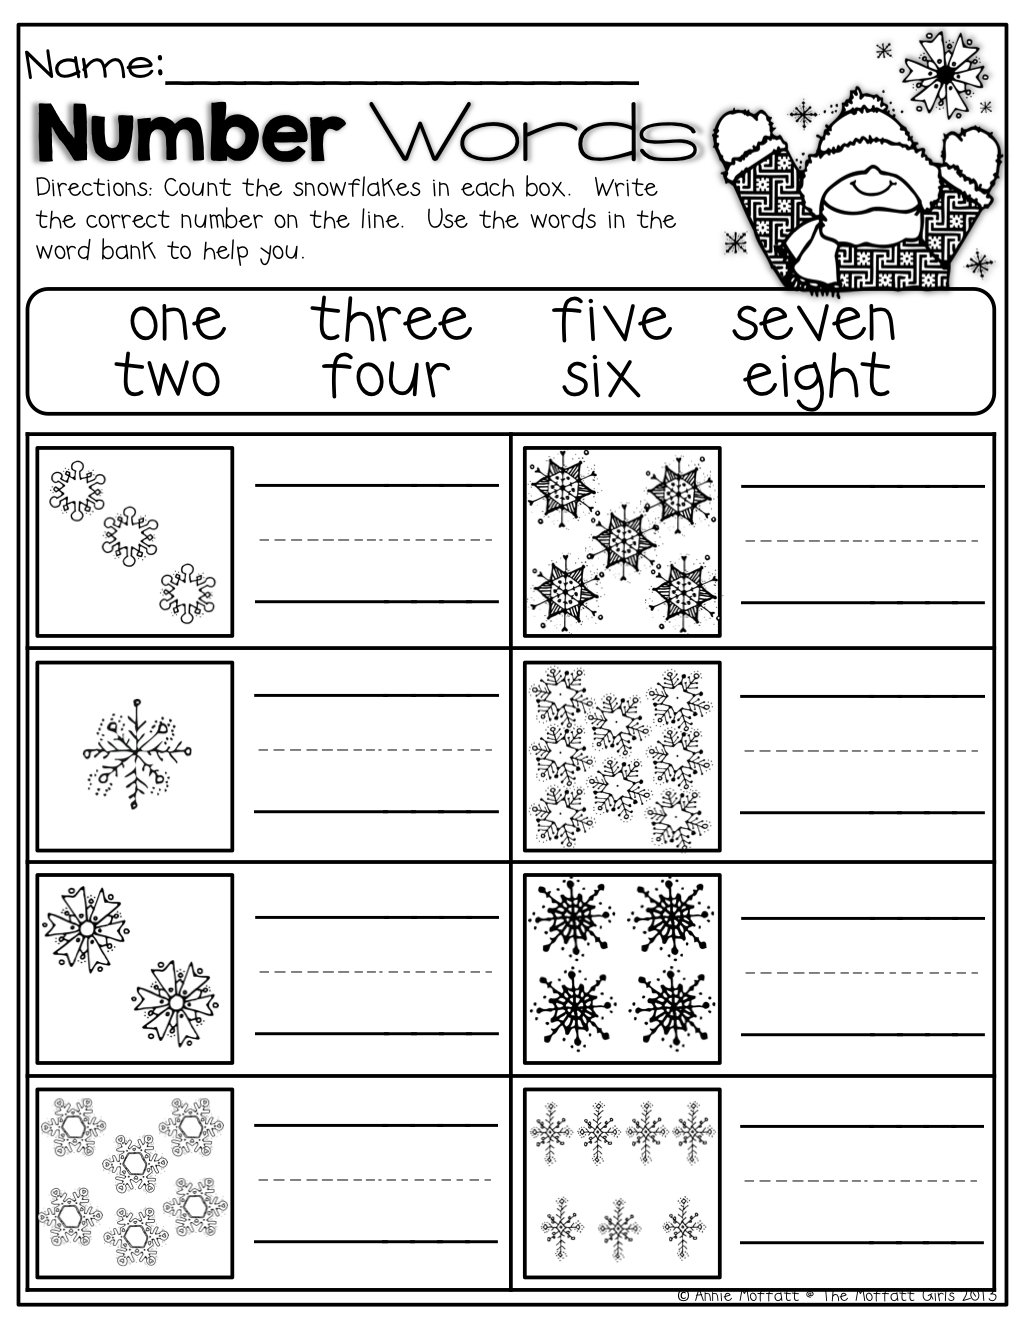 Trust image pertaining to kindergarten packet printable